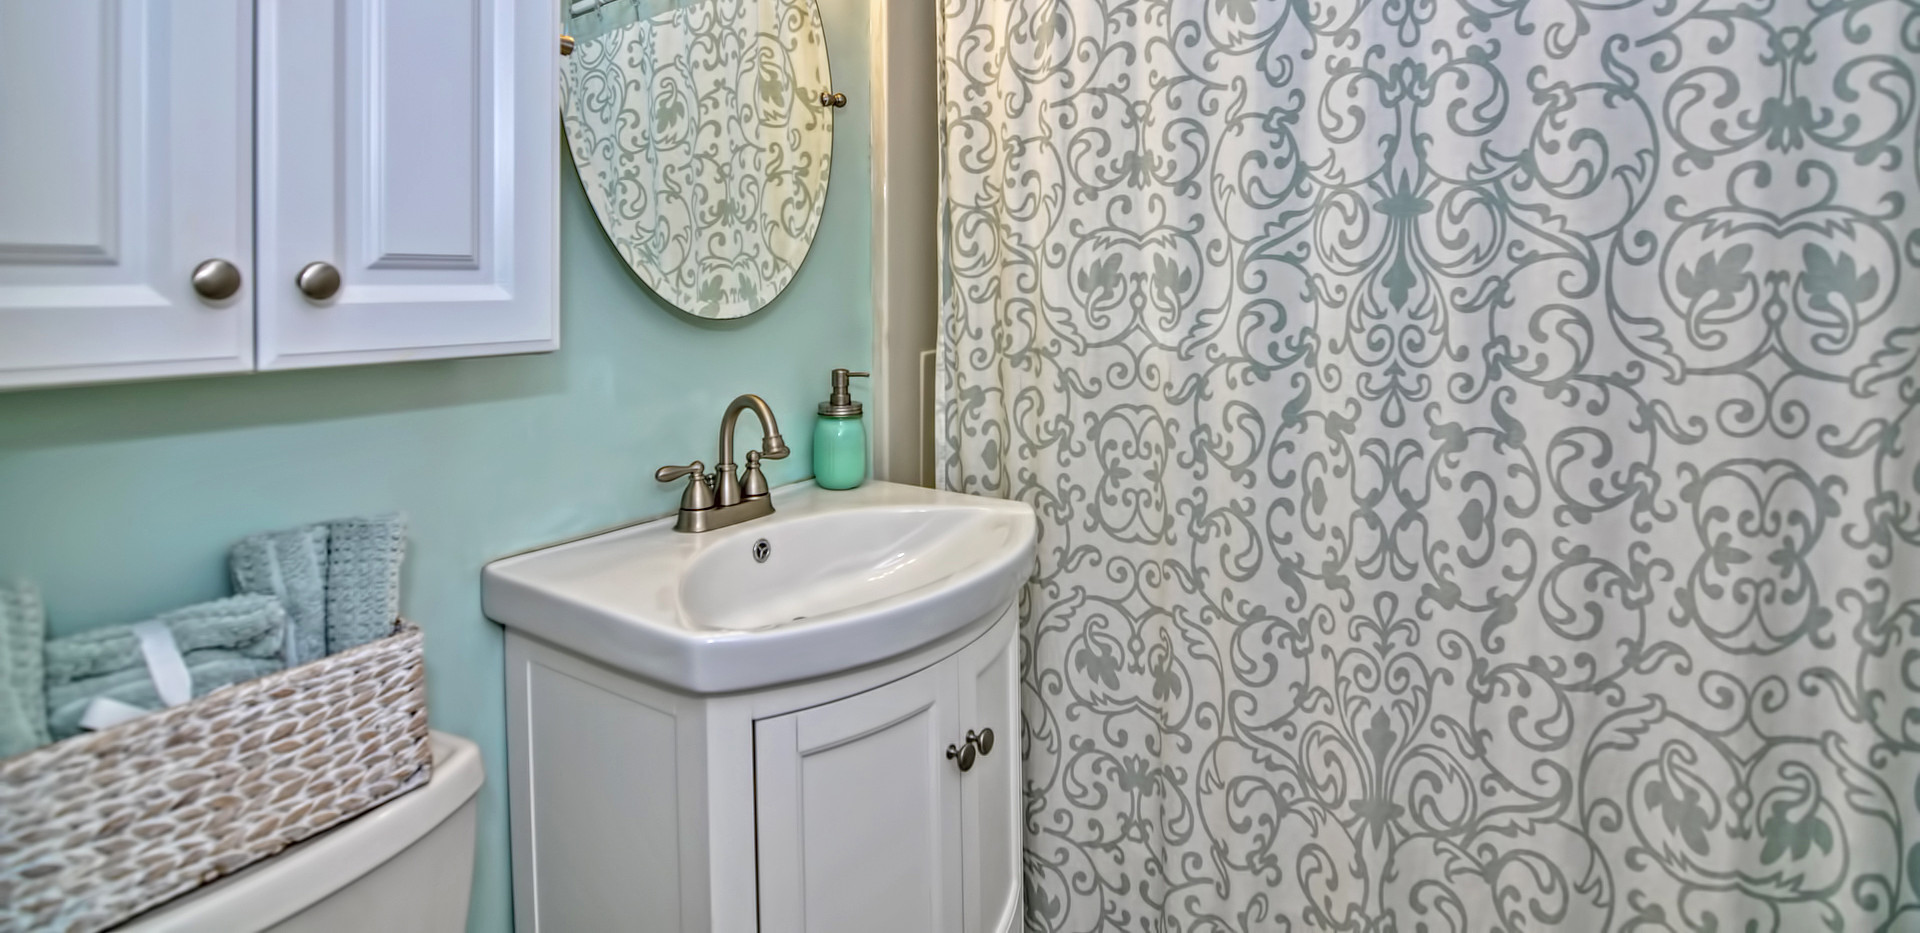 93 Taylor Street - Unit 2 - Waltham MA - Bathroom - The Madden Team at Berkshire Hathaway Commonwealth Real Estate - Condo for Sale